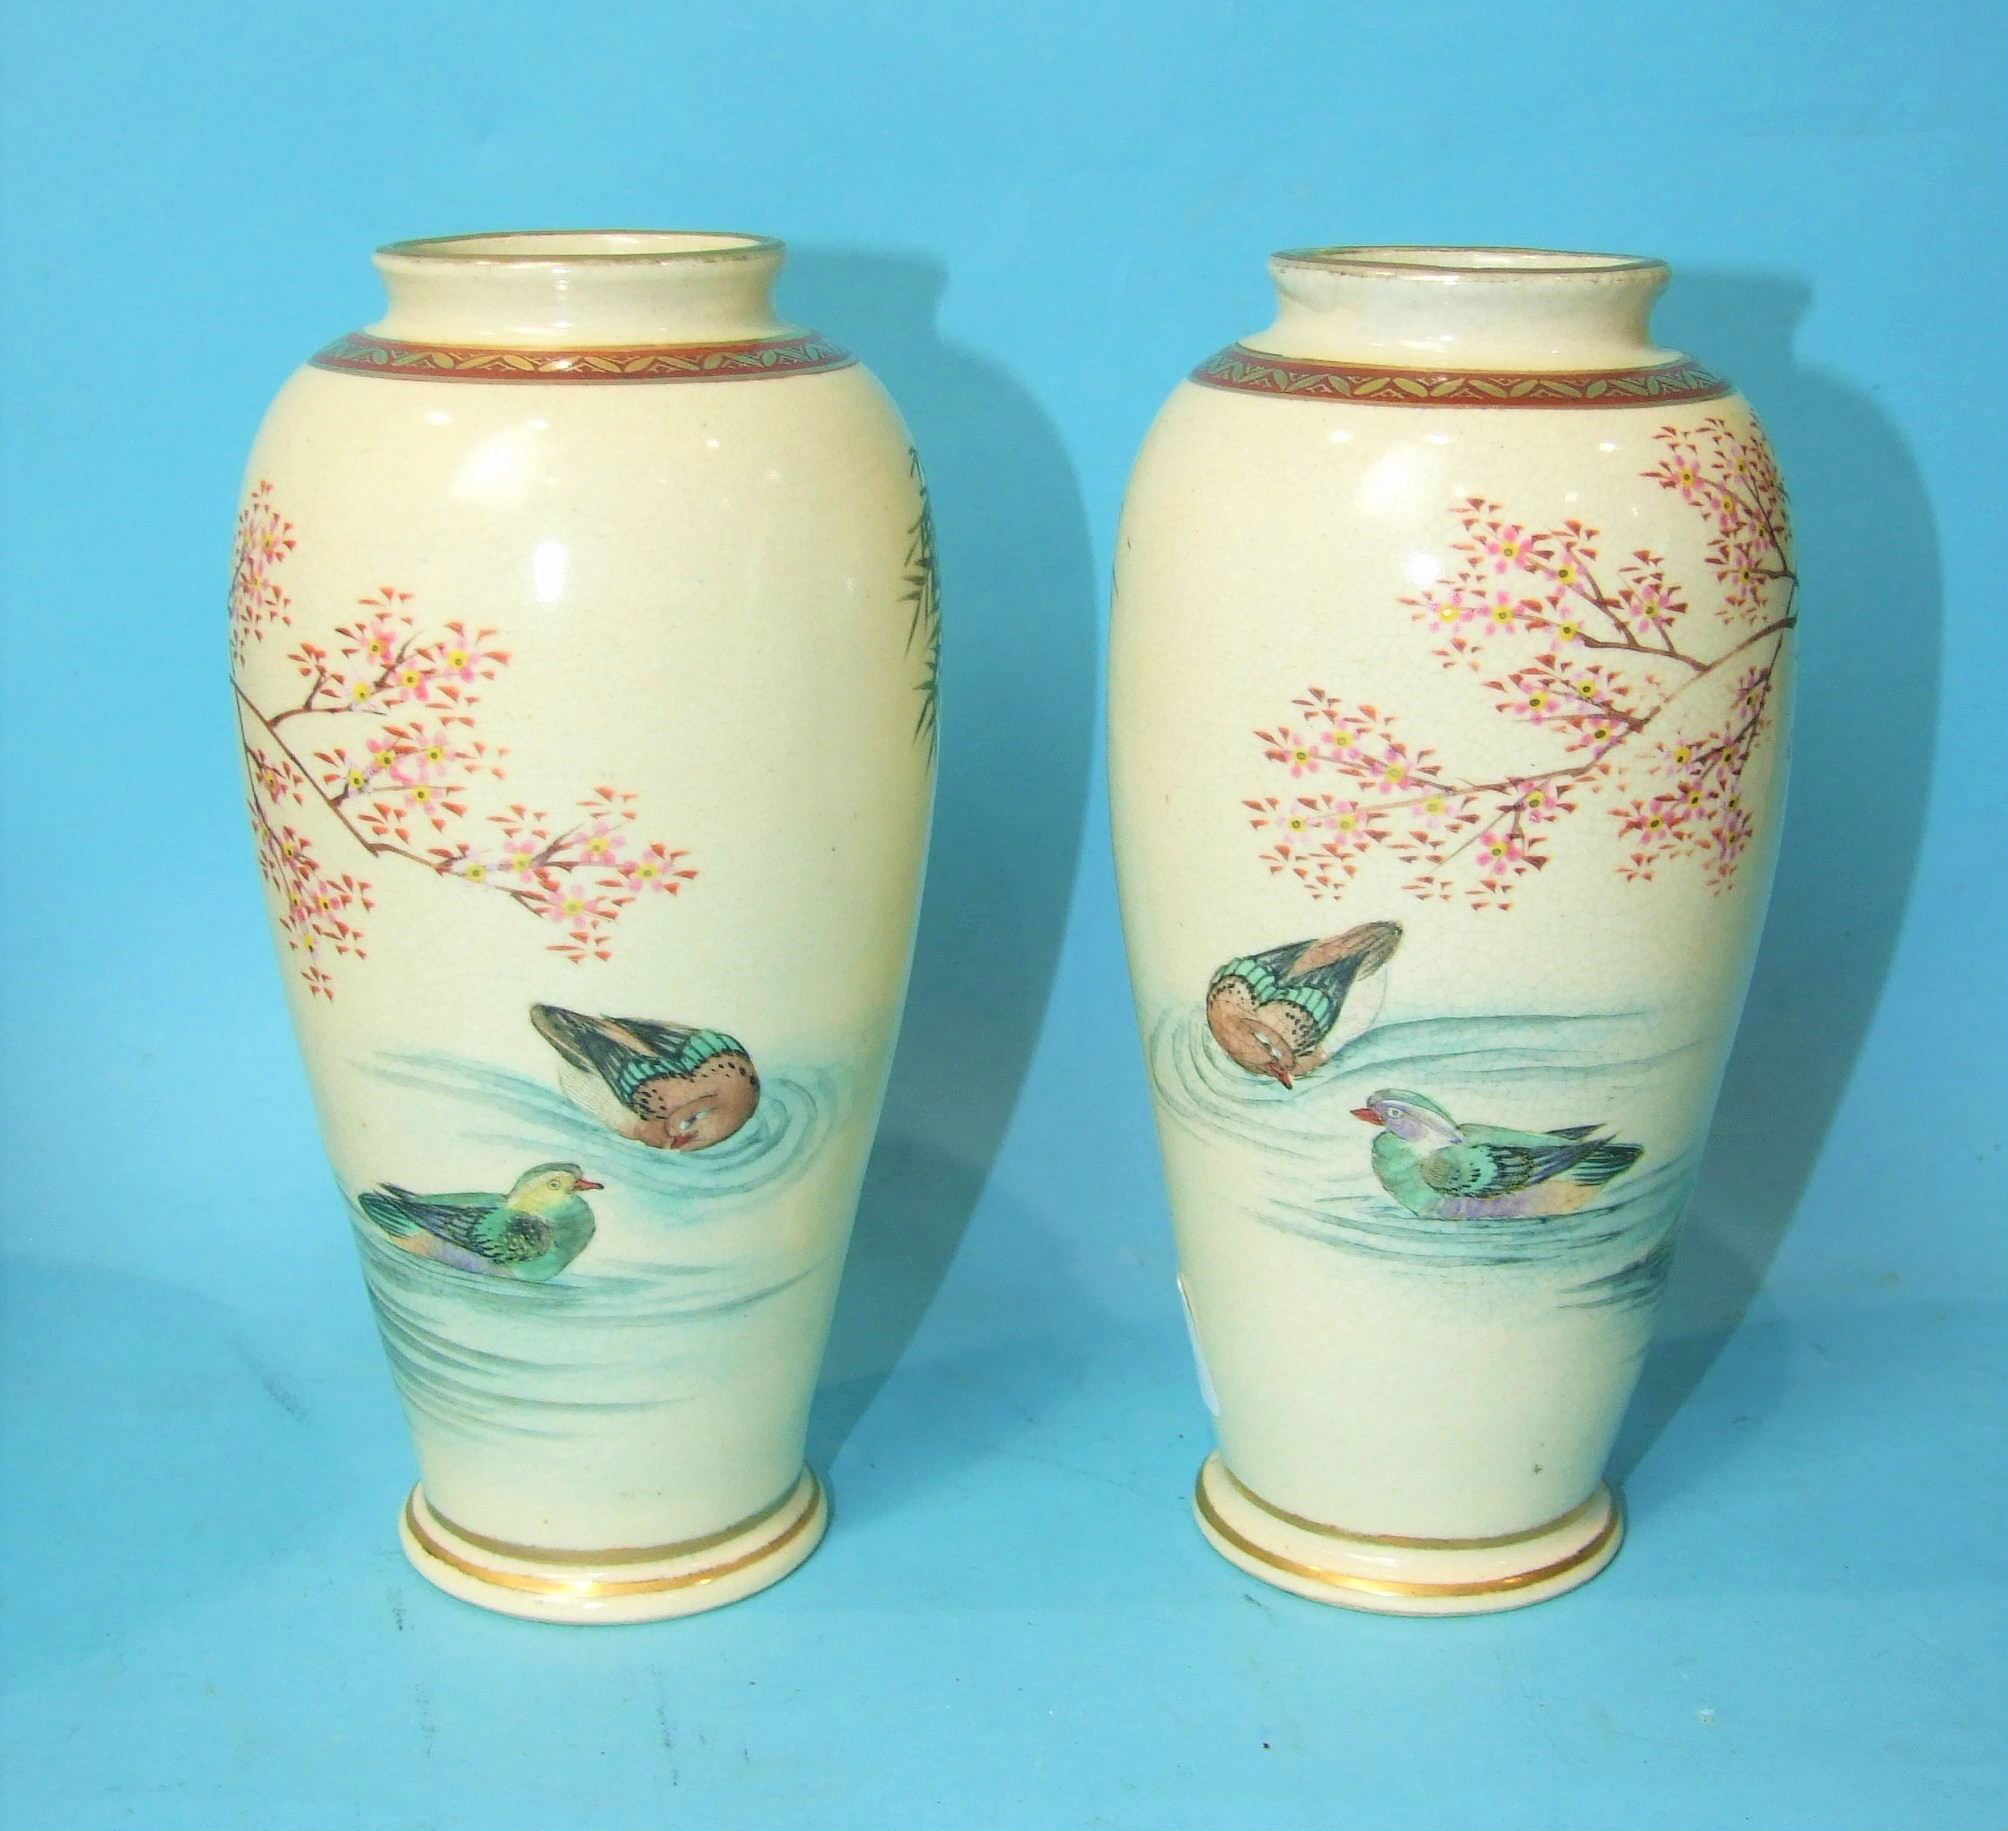 Lot 372 - A pair of Japanese Satsuma vases decorated with ducks, 18cm high, a similar box and cover, (a/f),